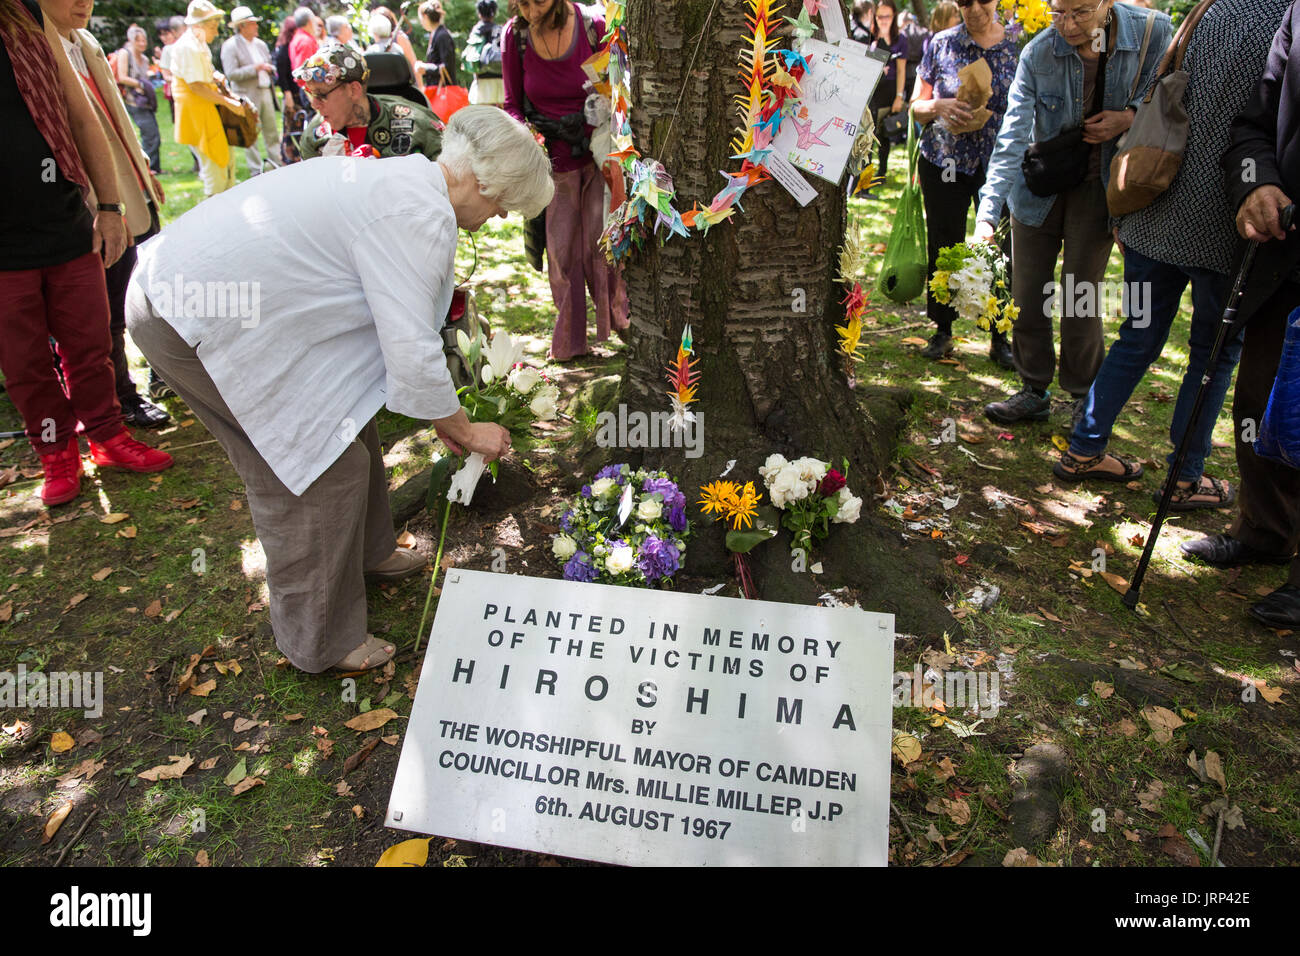 London, UK. 6th August, 2017. Carol Turner, Vice-Chair of the Campaign for Nuclear Disarmament (CND), lays flowers next to the commemorative Hiroshima cherry tree at the end of the annual Hiroshima Day anniversary event in Tavistock Square. Credit: Mark Kerrison/Alamy Live News - Stock Image